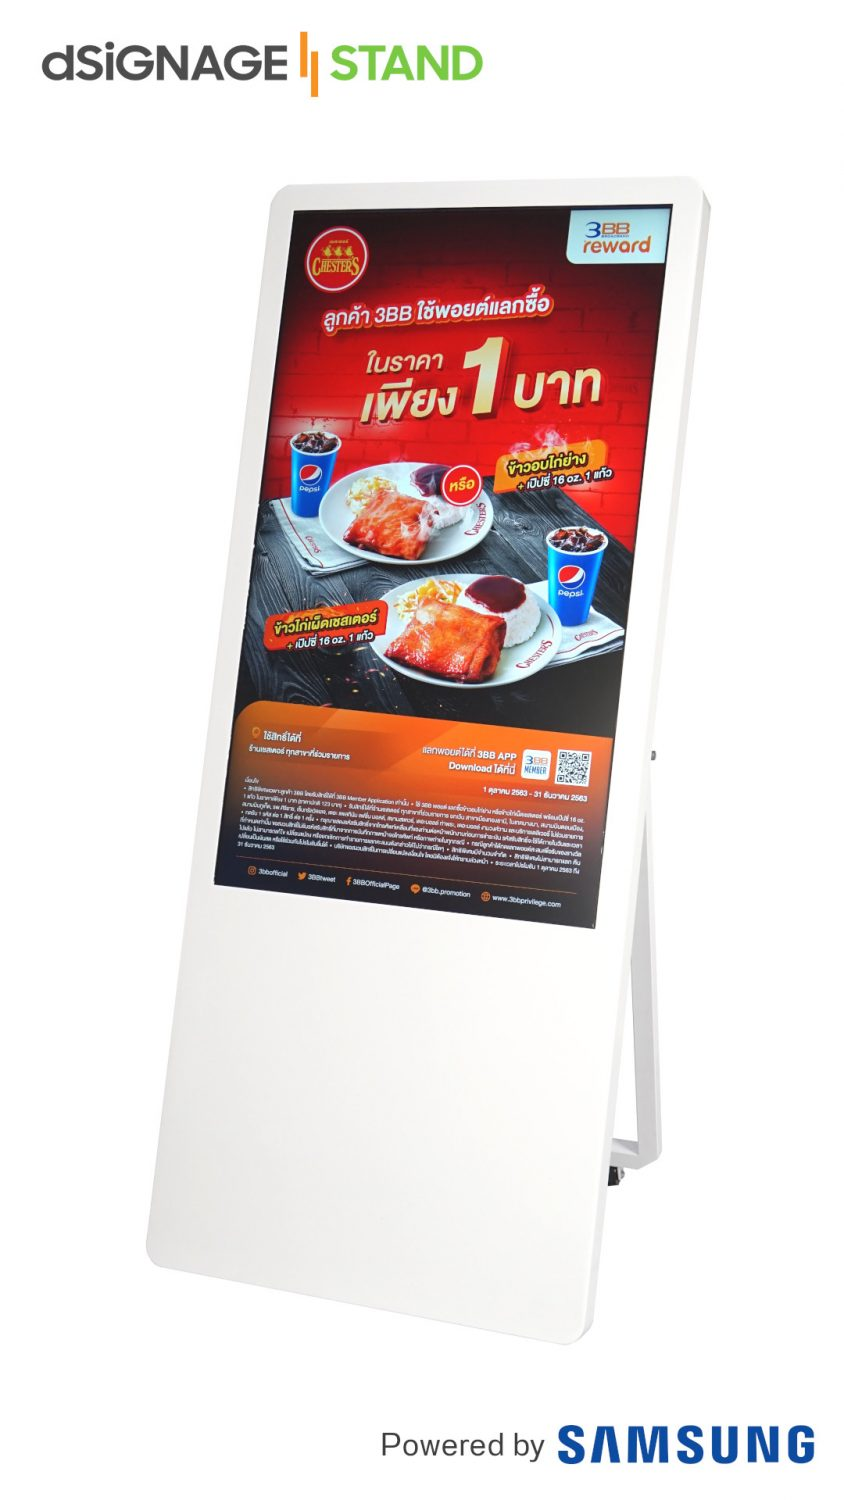 dsignage stand digital signage stand a